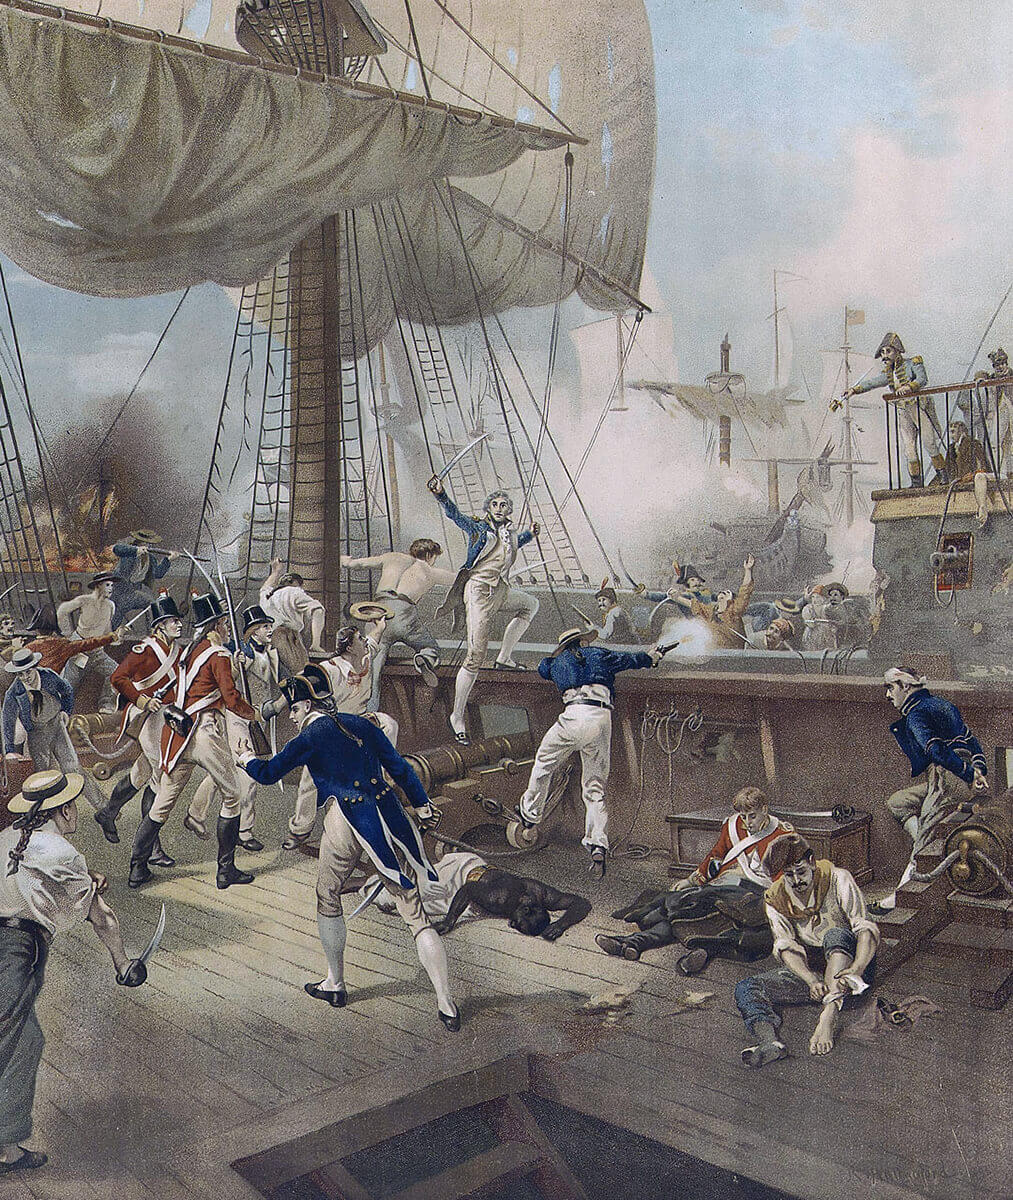 'All Hands to Board': Nelson boarding the San Nicolas at the Battle of Cape St Vincent on 14th February 1797 in the Napoleonic Wars: picture by Robert Hillingford